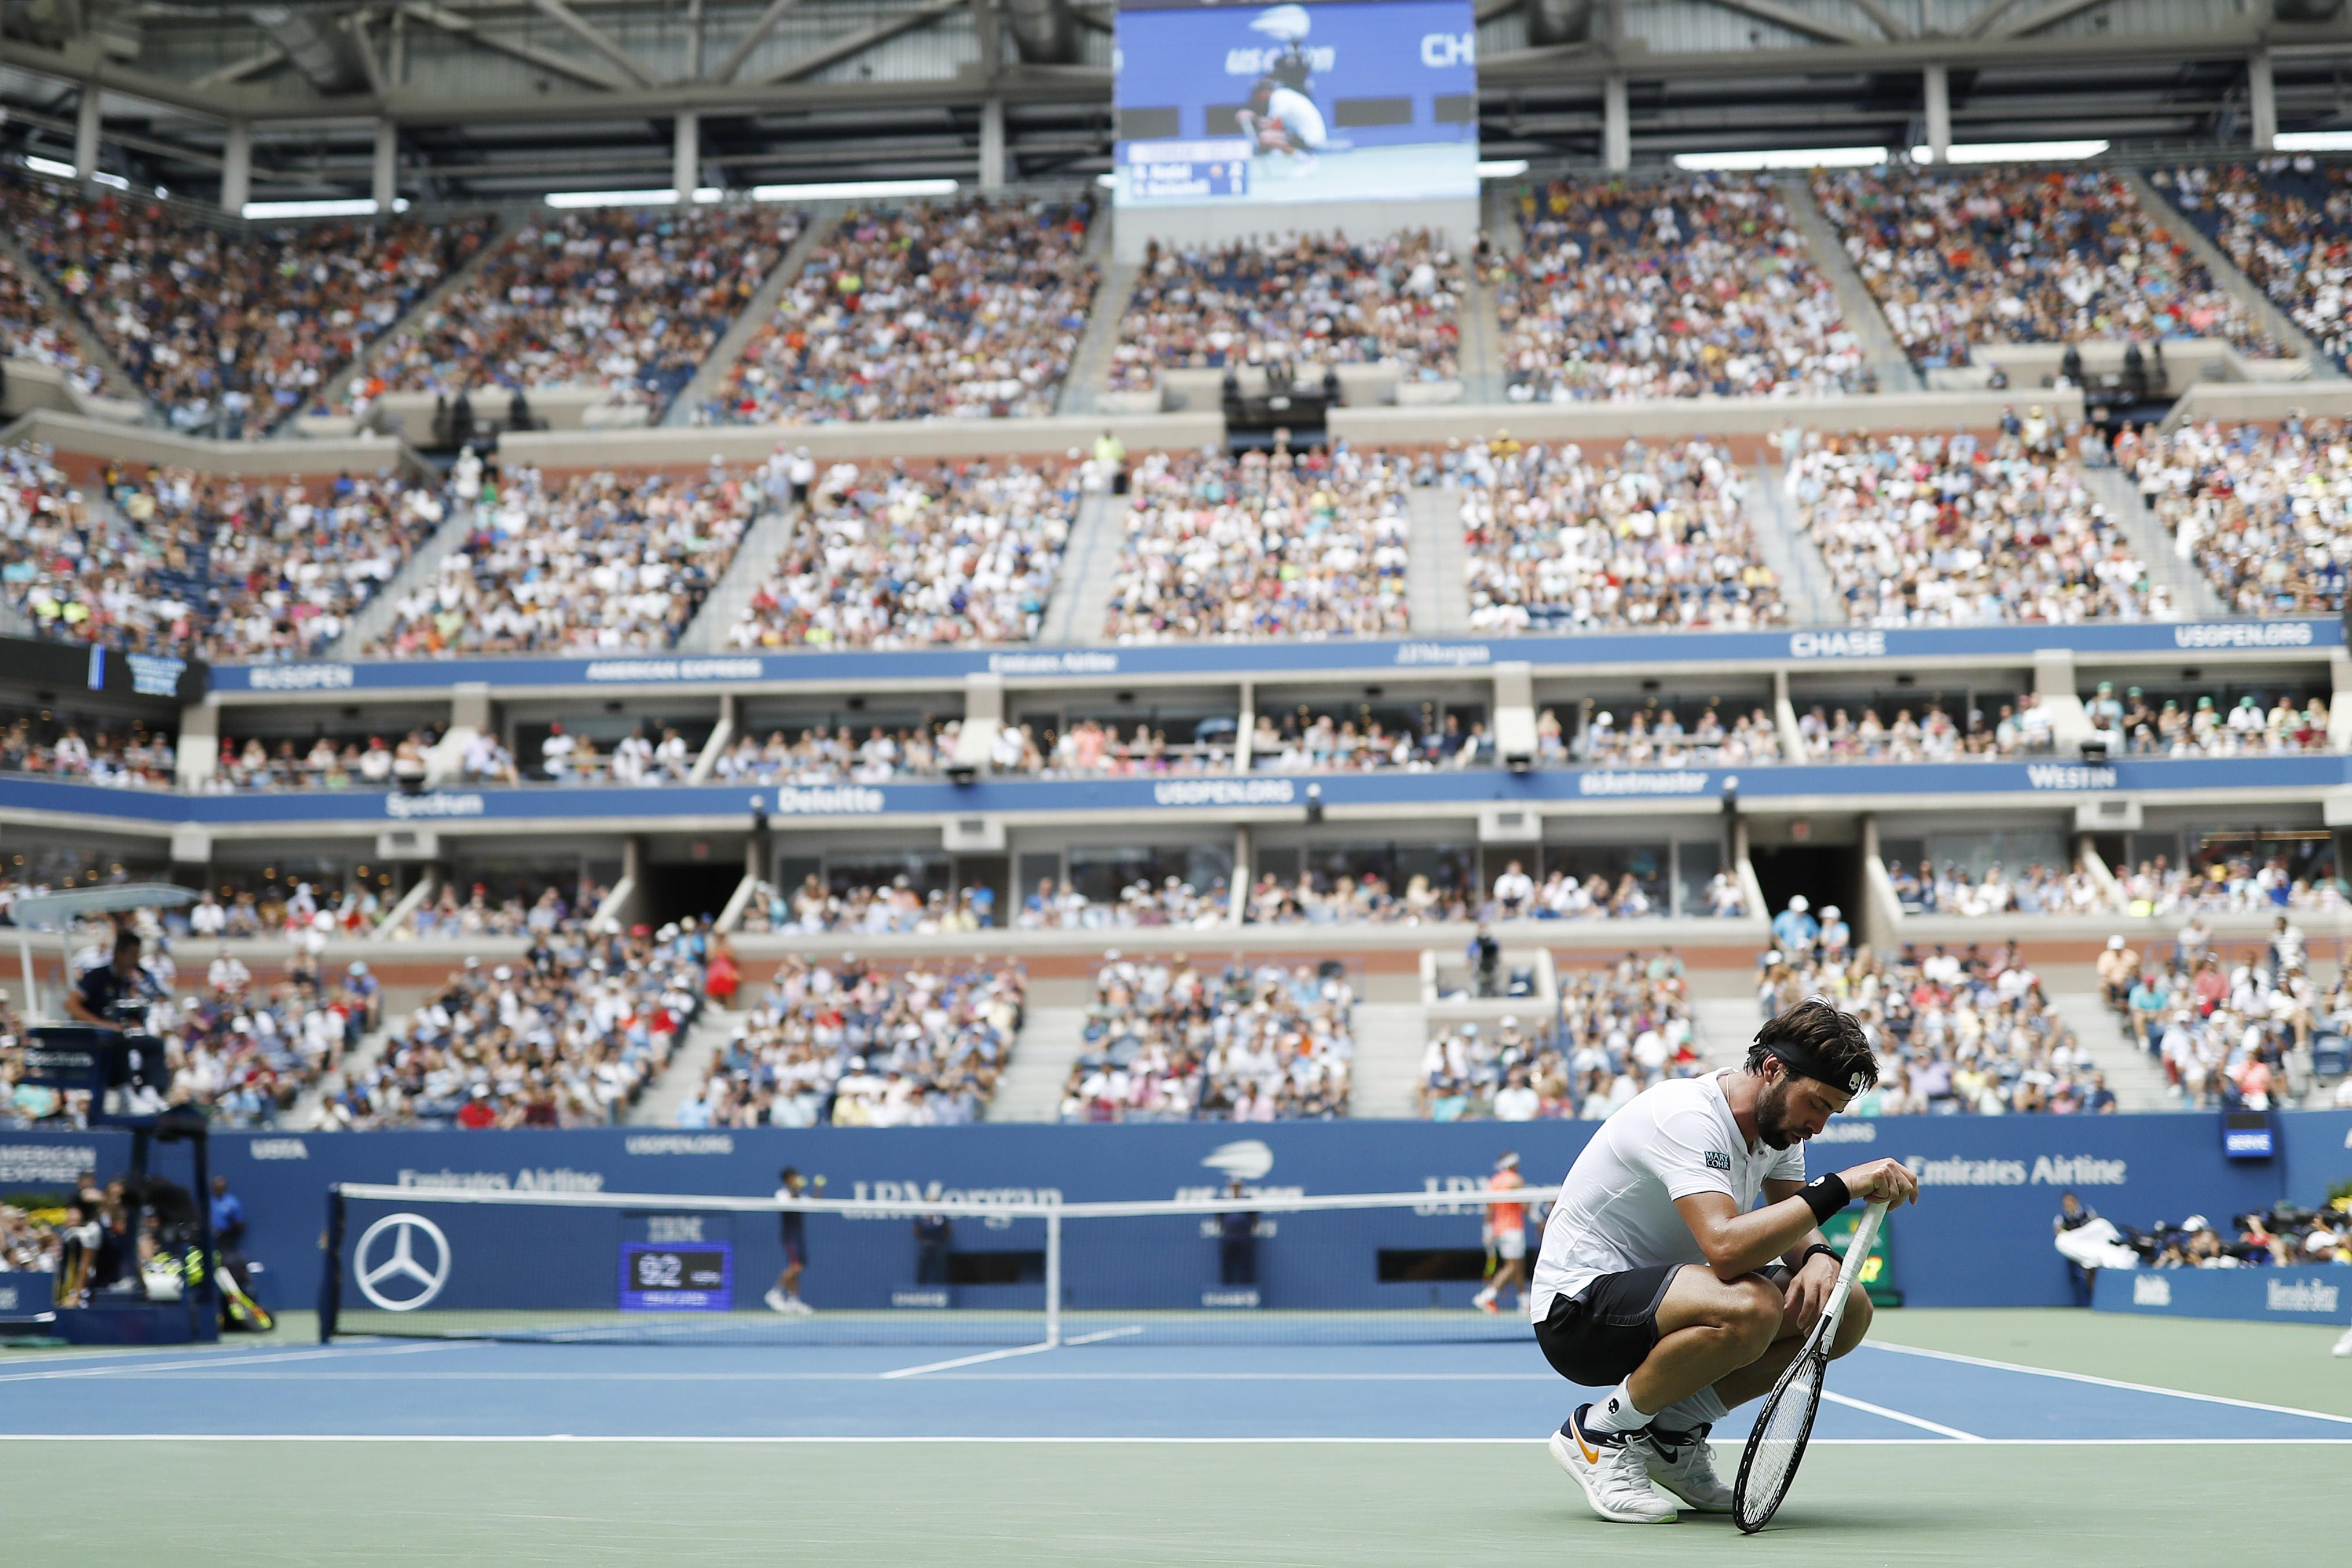 Basilashvili could not deal with the consistency, power and defence of the No1 seed in New York